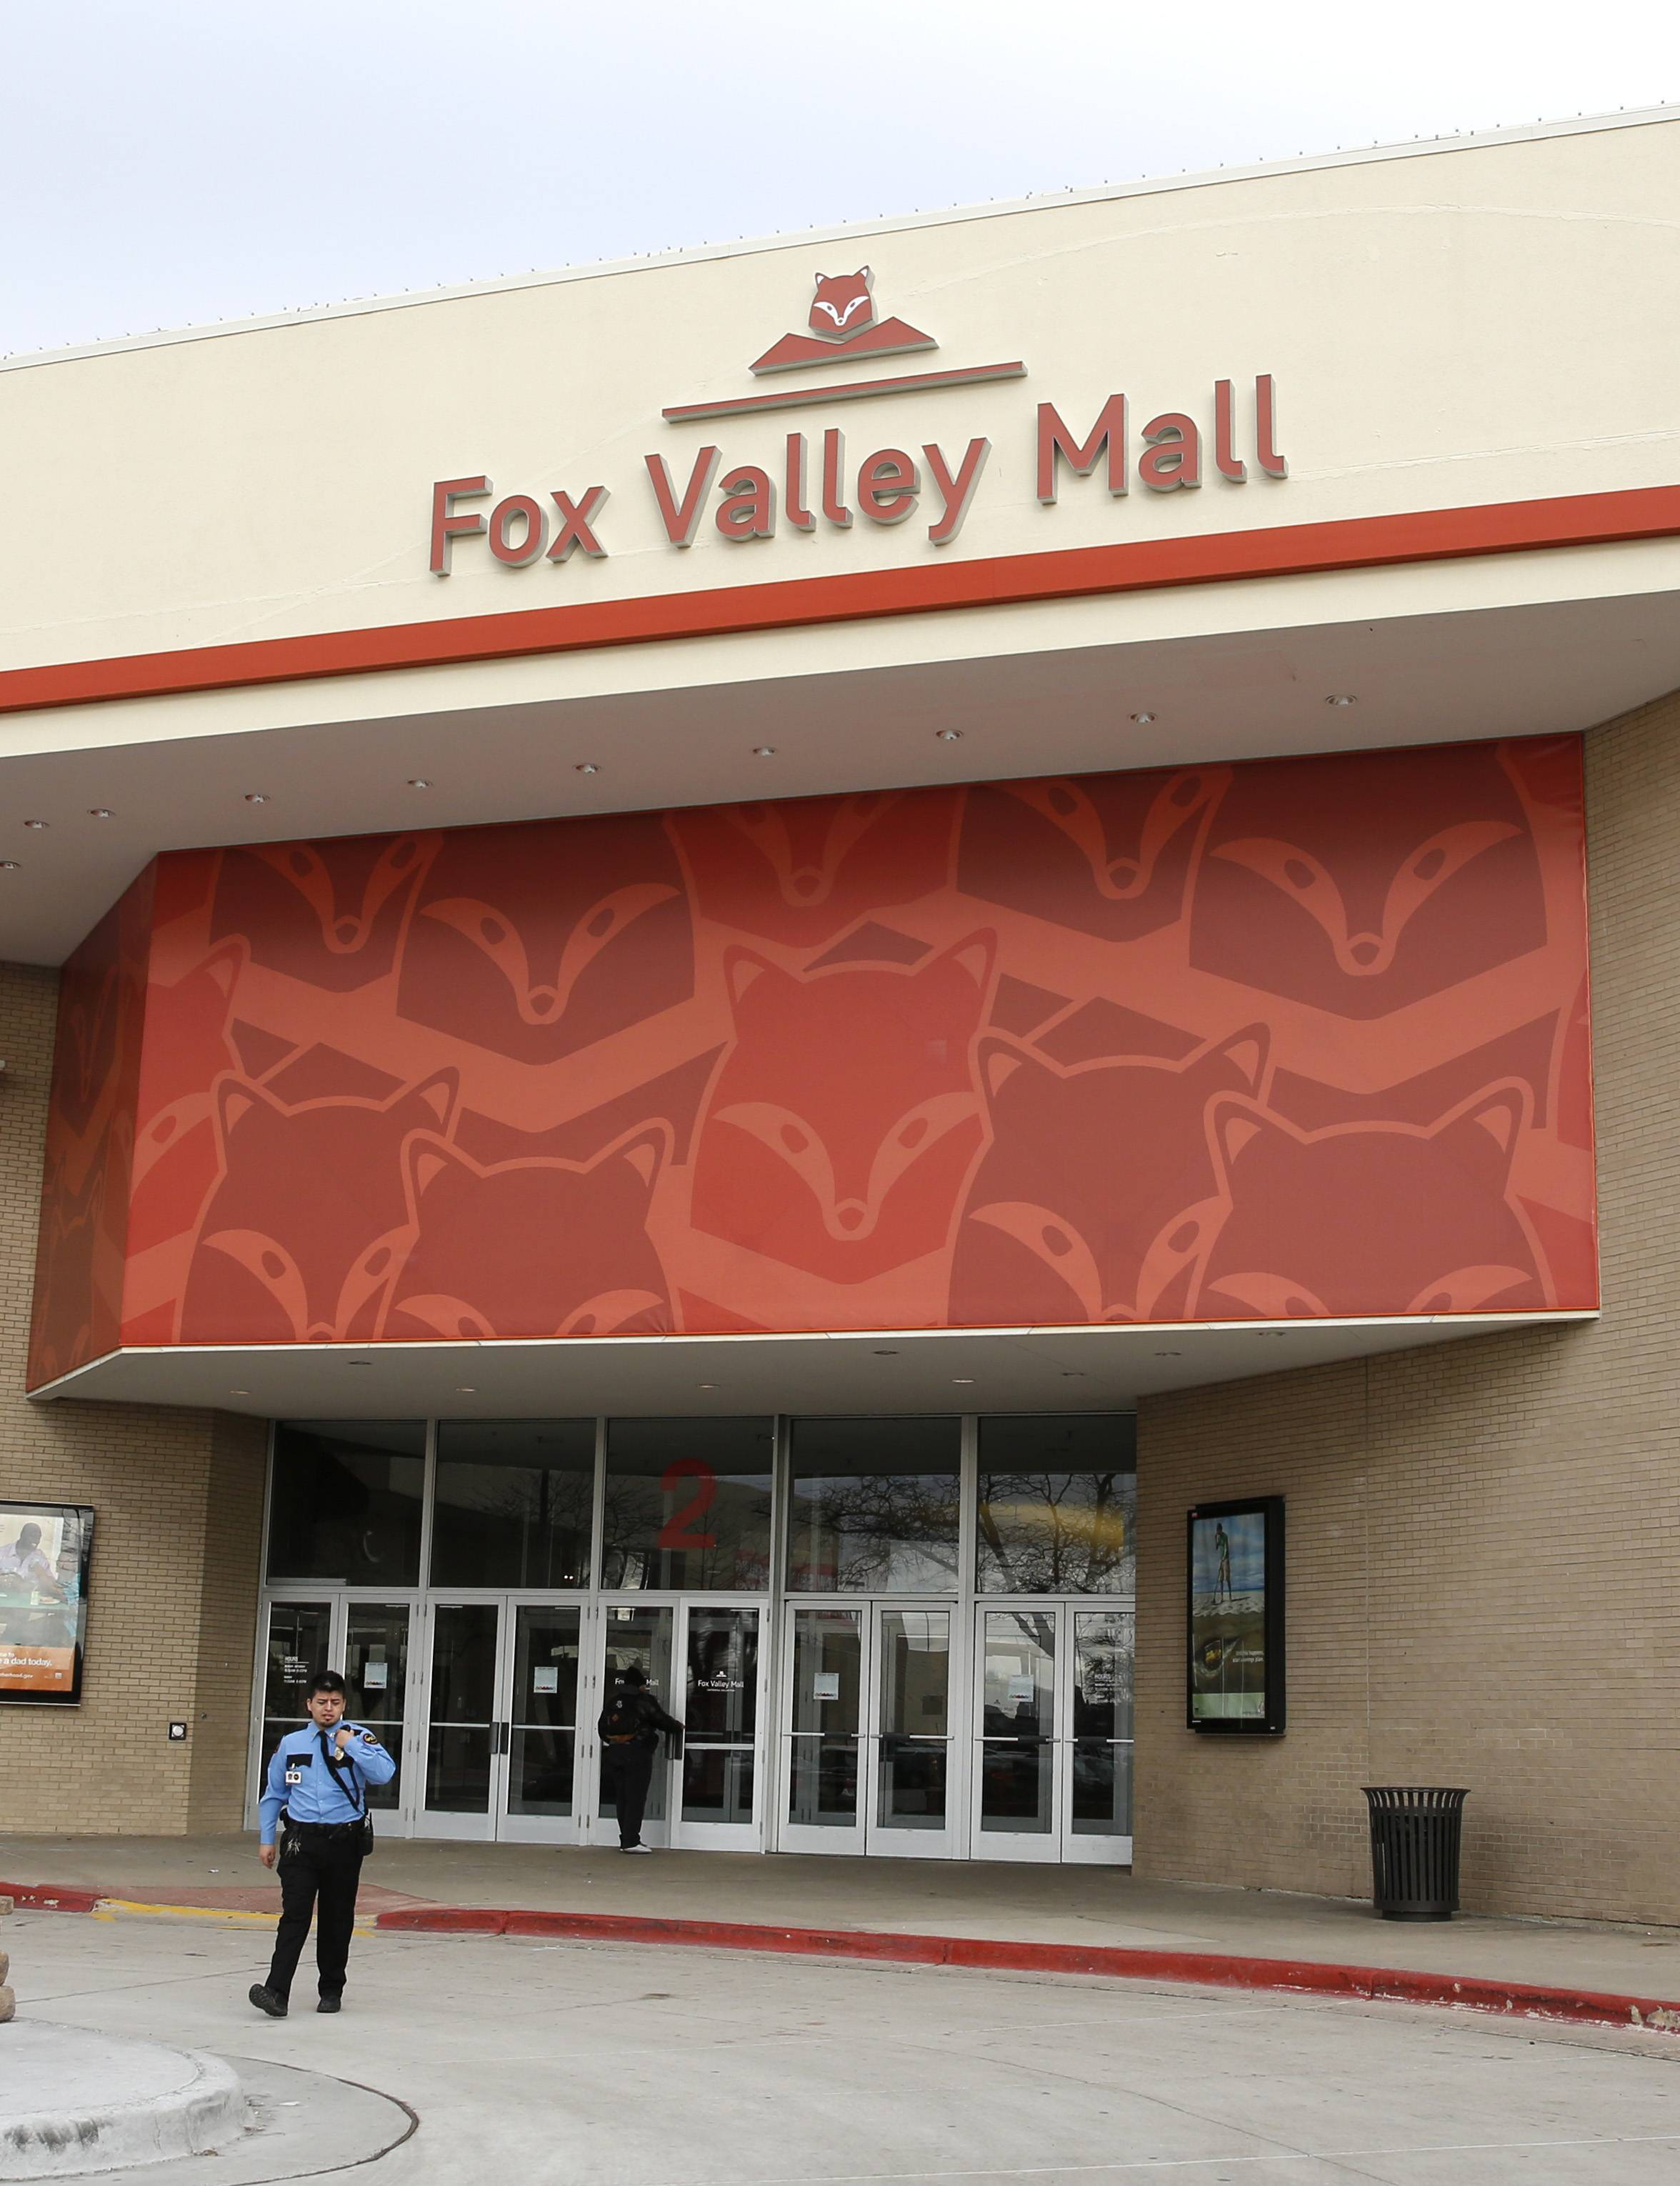 The city is looking for ways to revitalize the Route 59 commercial corridor, including the 44-year-old Fox Valley Mall in Aurora, which has lost two of its four anchor stores.